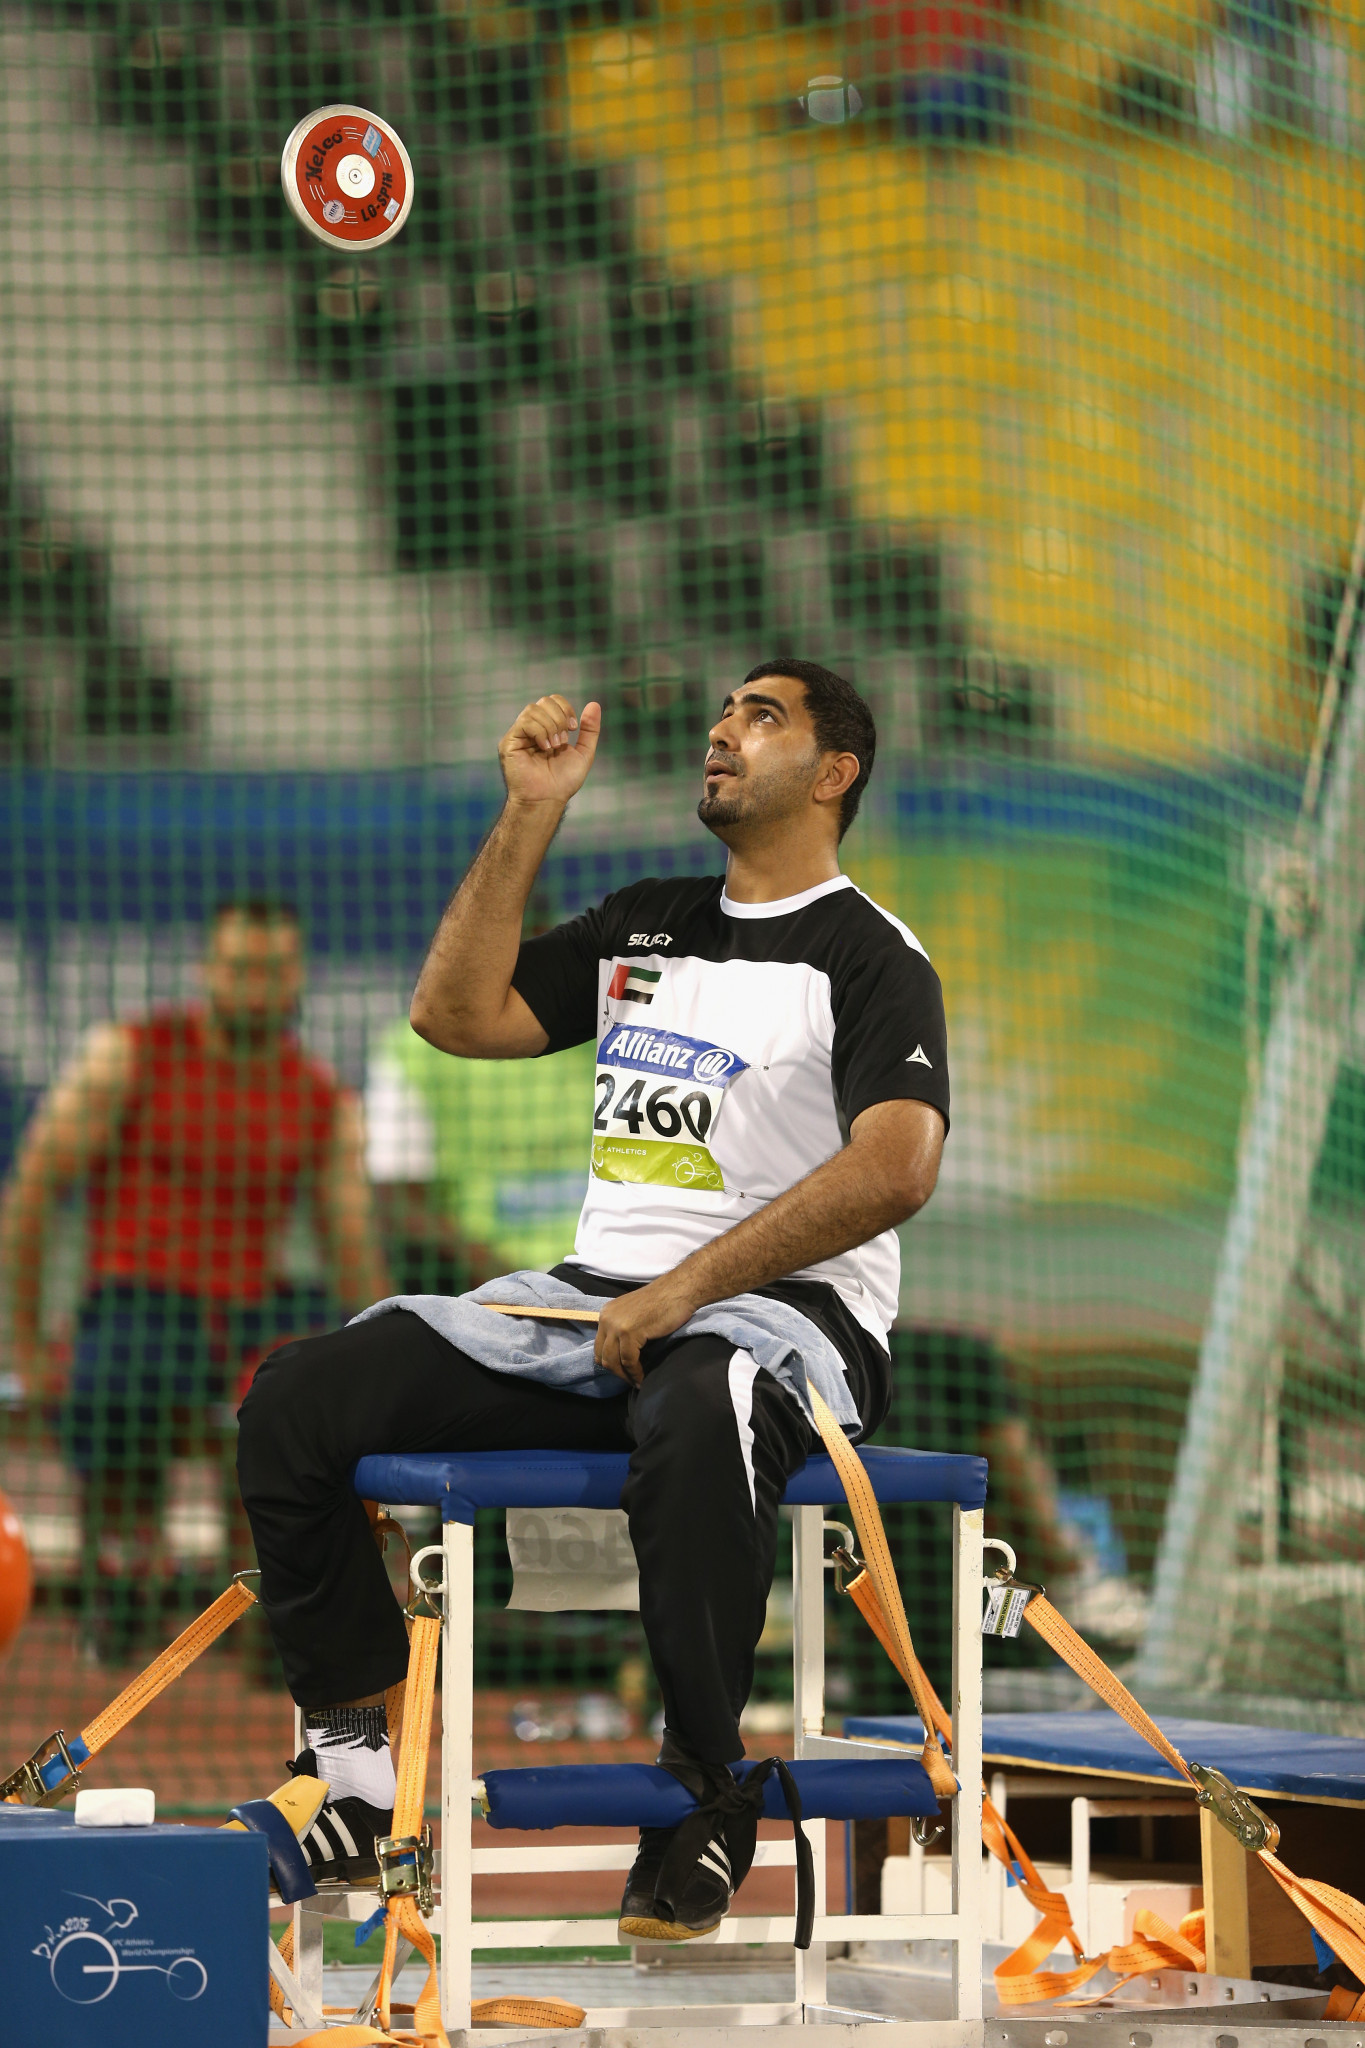 UK Athletics are under investigation for corporate manslaughter after the death of Paralympic discus thrower Abdullah Hayayei in 2017 ©Getty Images